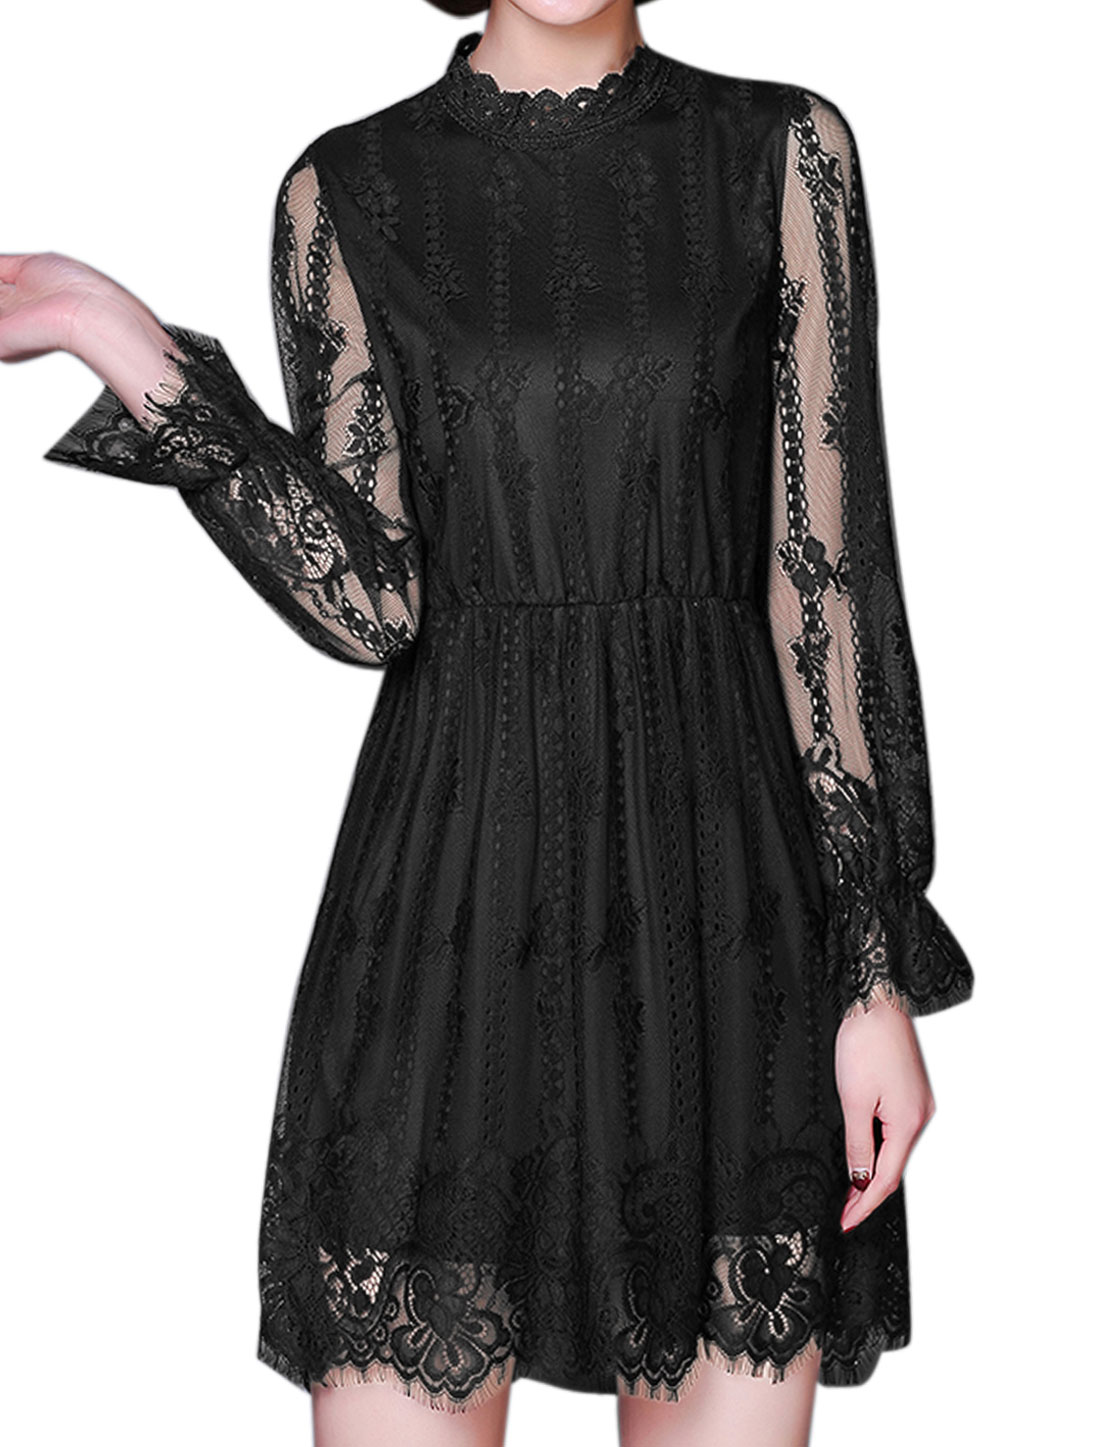 Ladies Stand Collar Hollow Out Floral Lace Dress Black L